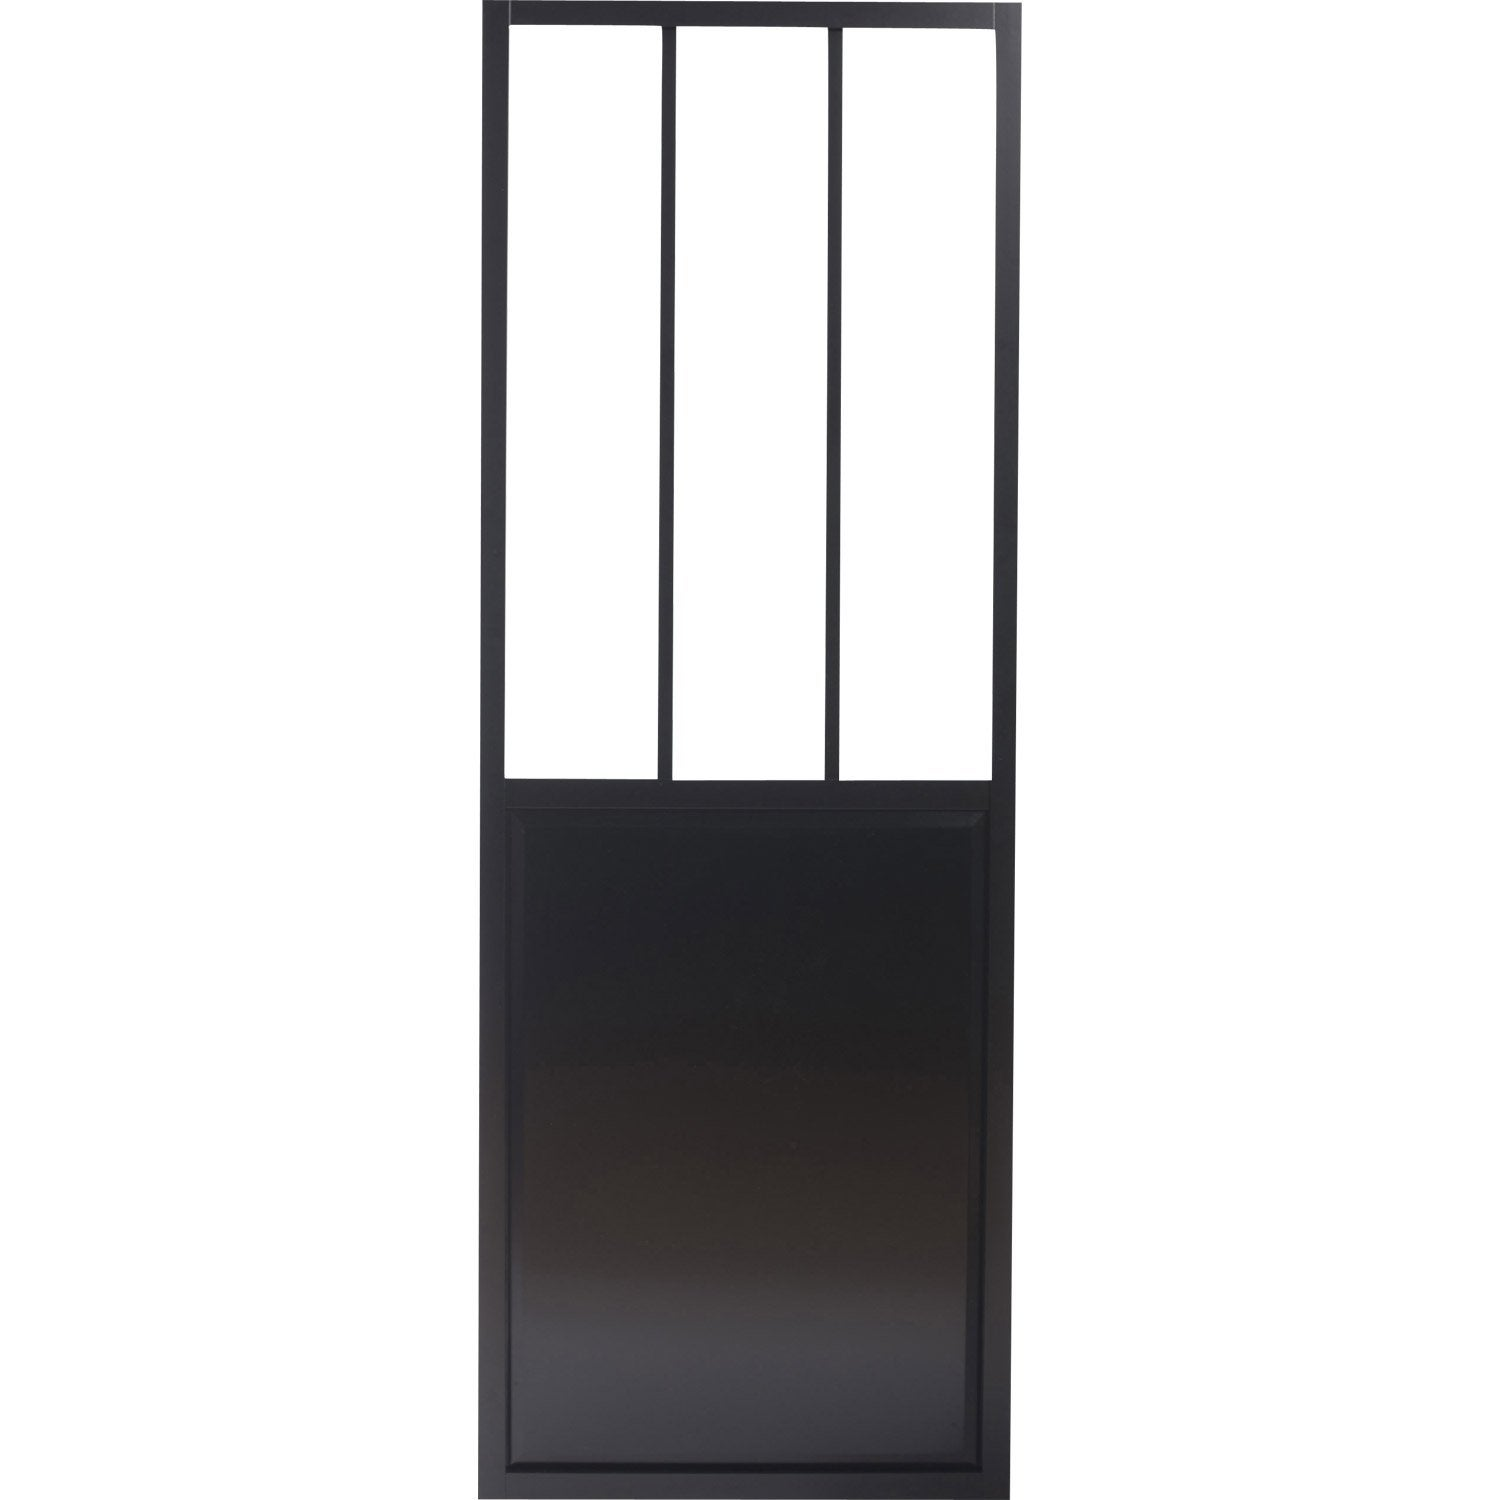 porte coulissante aluminium noir atelier verre givr. Black Bedroom Furniture Sets. Home Design Ideas